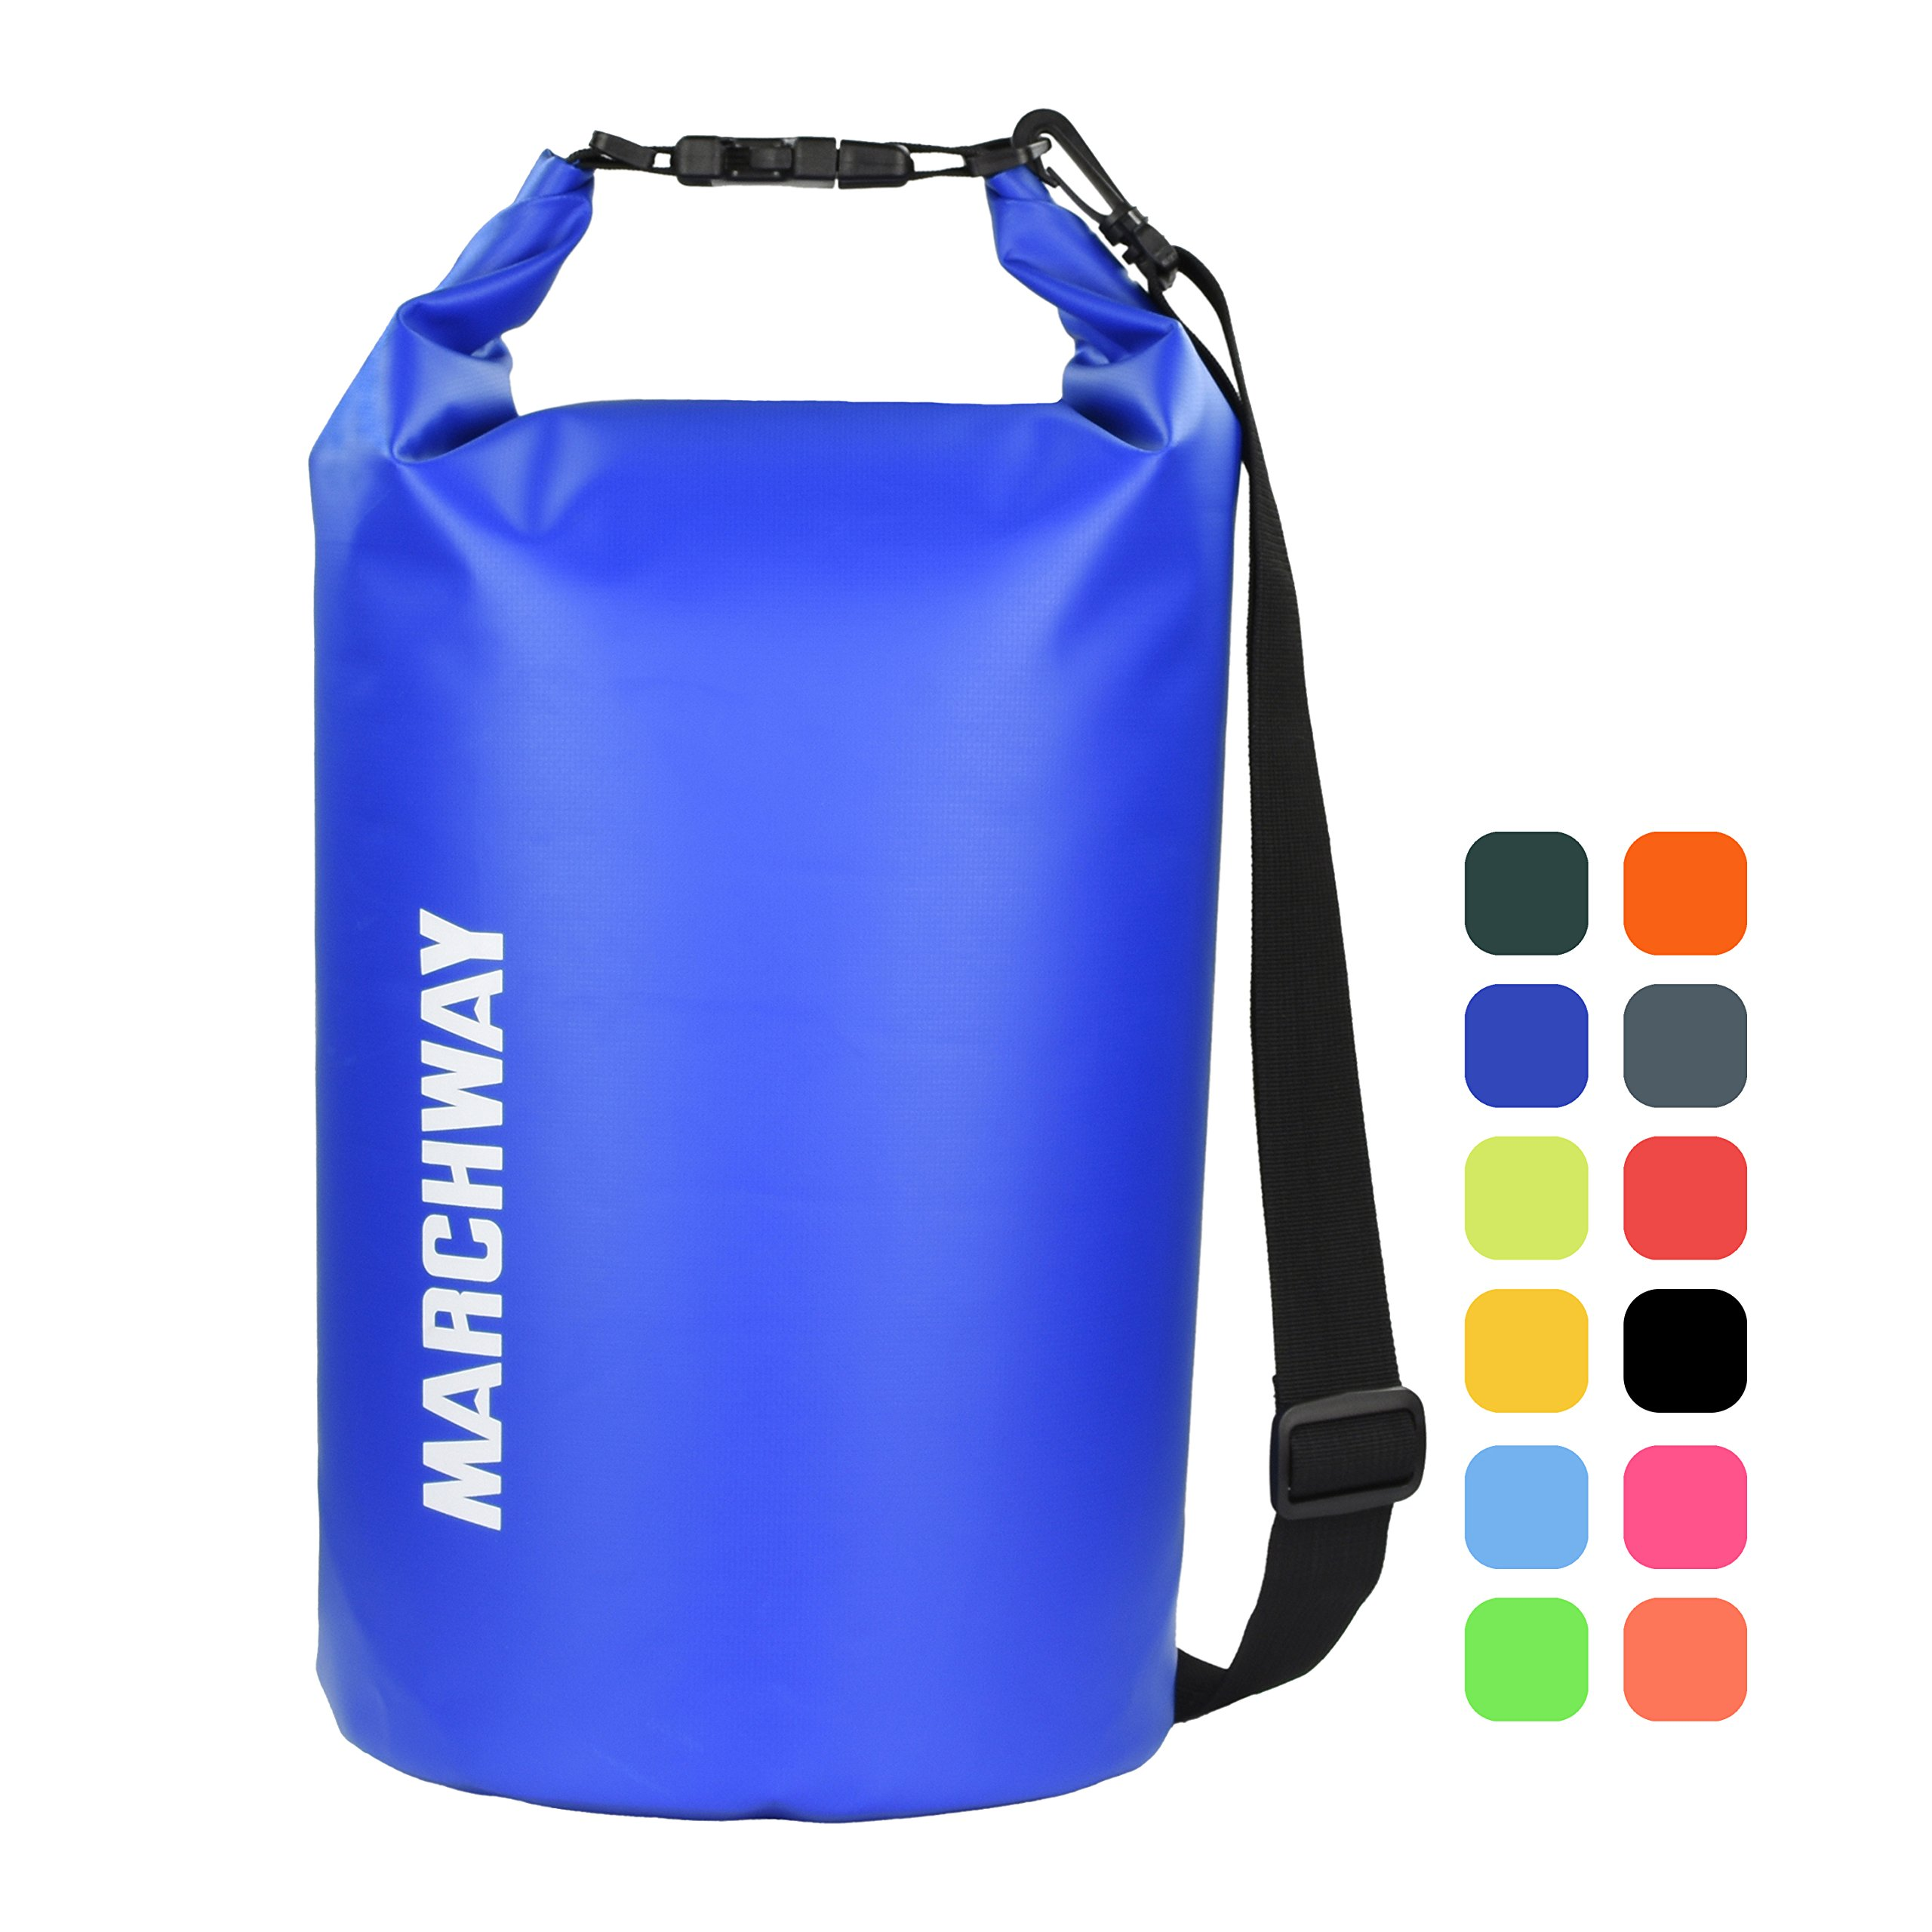 Floating Waterproof Dry Bag Backpack 5L/10L/20L/30L/40L, Roll Top Dry Sack Pack for Kayaking Rafting Boating Surfing Swimming Camping Hiking Beach Fishing Skiing Snowboarding Sailing (Dark Blue, 10L) by MARCHWAY